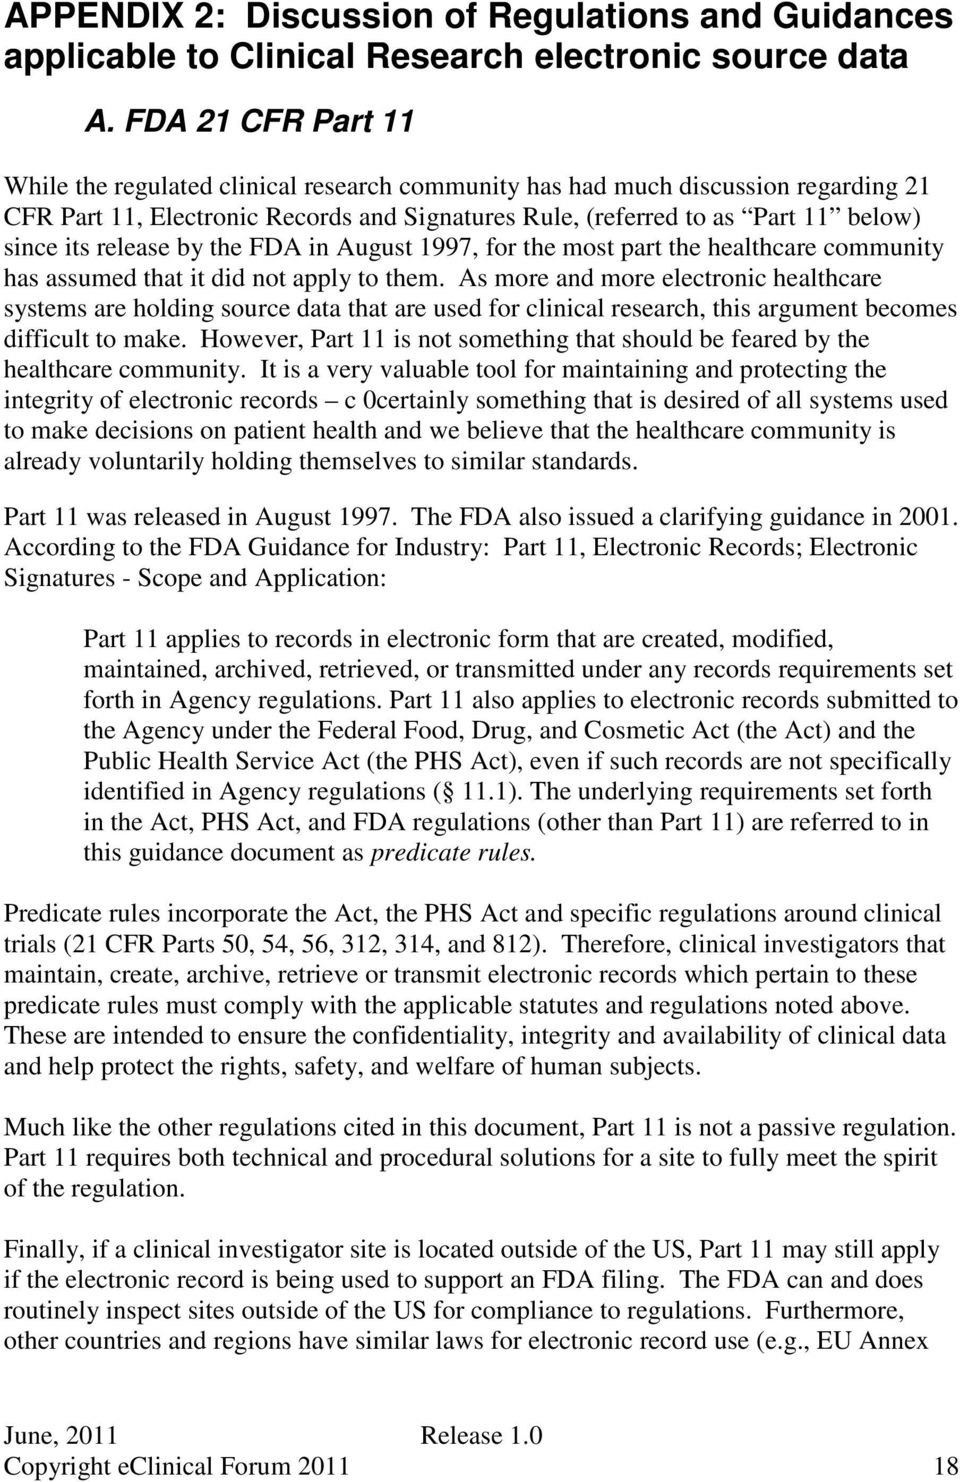 release by the FD in ugust 1997, for the most part the healthcare community has assumed that it did not apply to them.